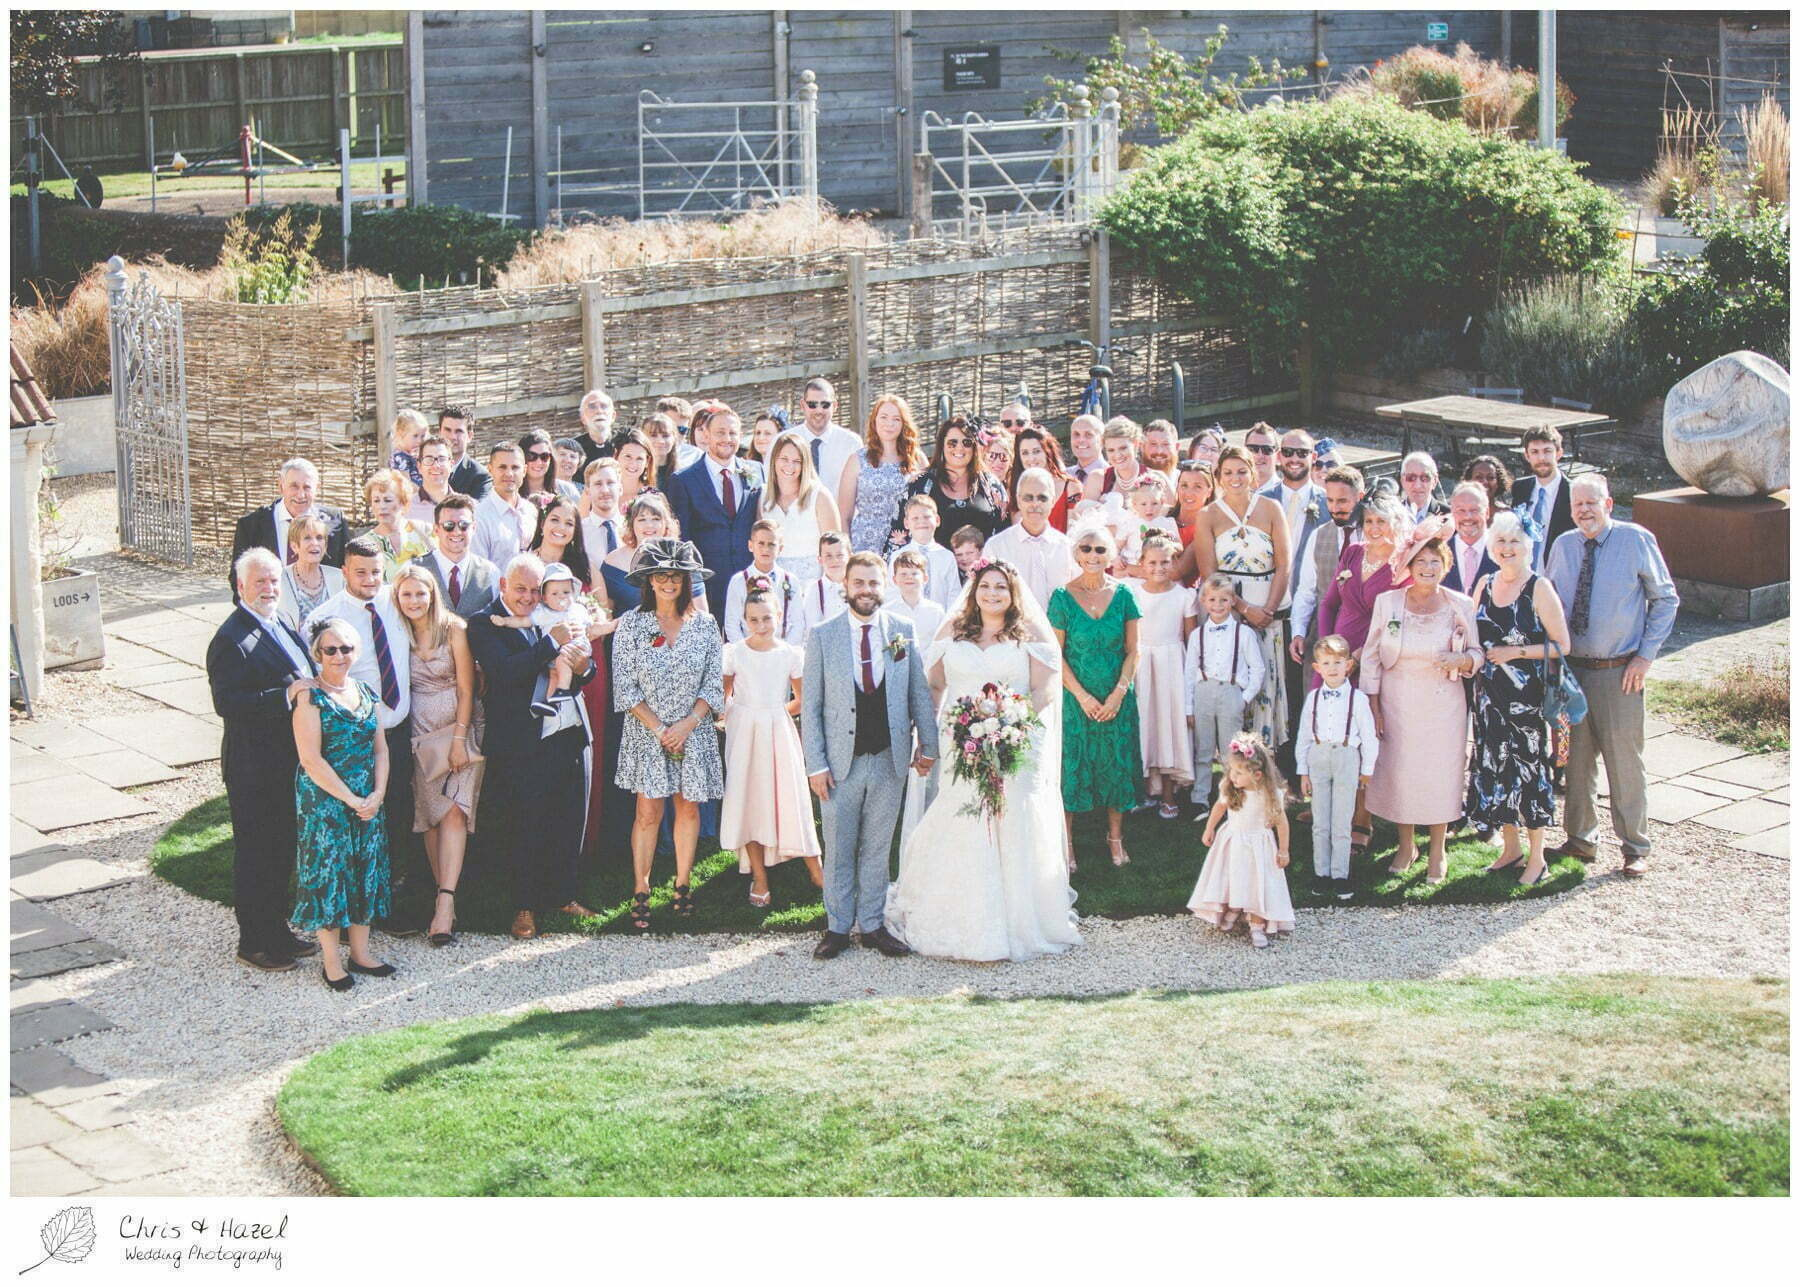 Full wedding party group formal photograph The Glove Factory Wedding Photography, Wiltshire Wedding Photographer Trowbridge, Chris and Hazel Wedding Photography